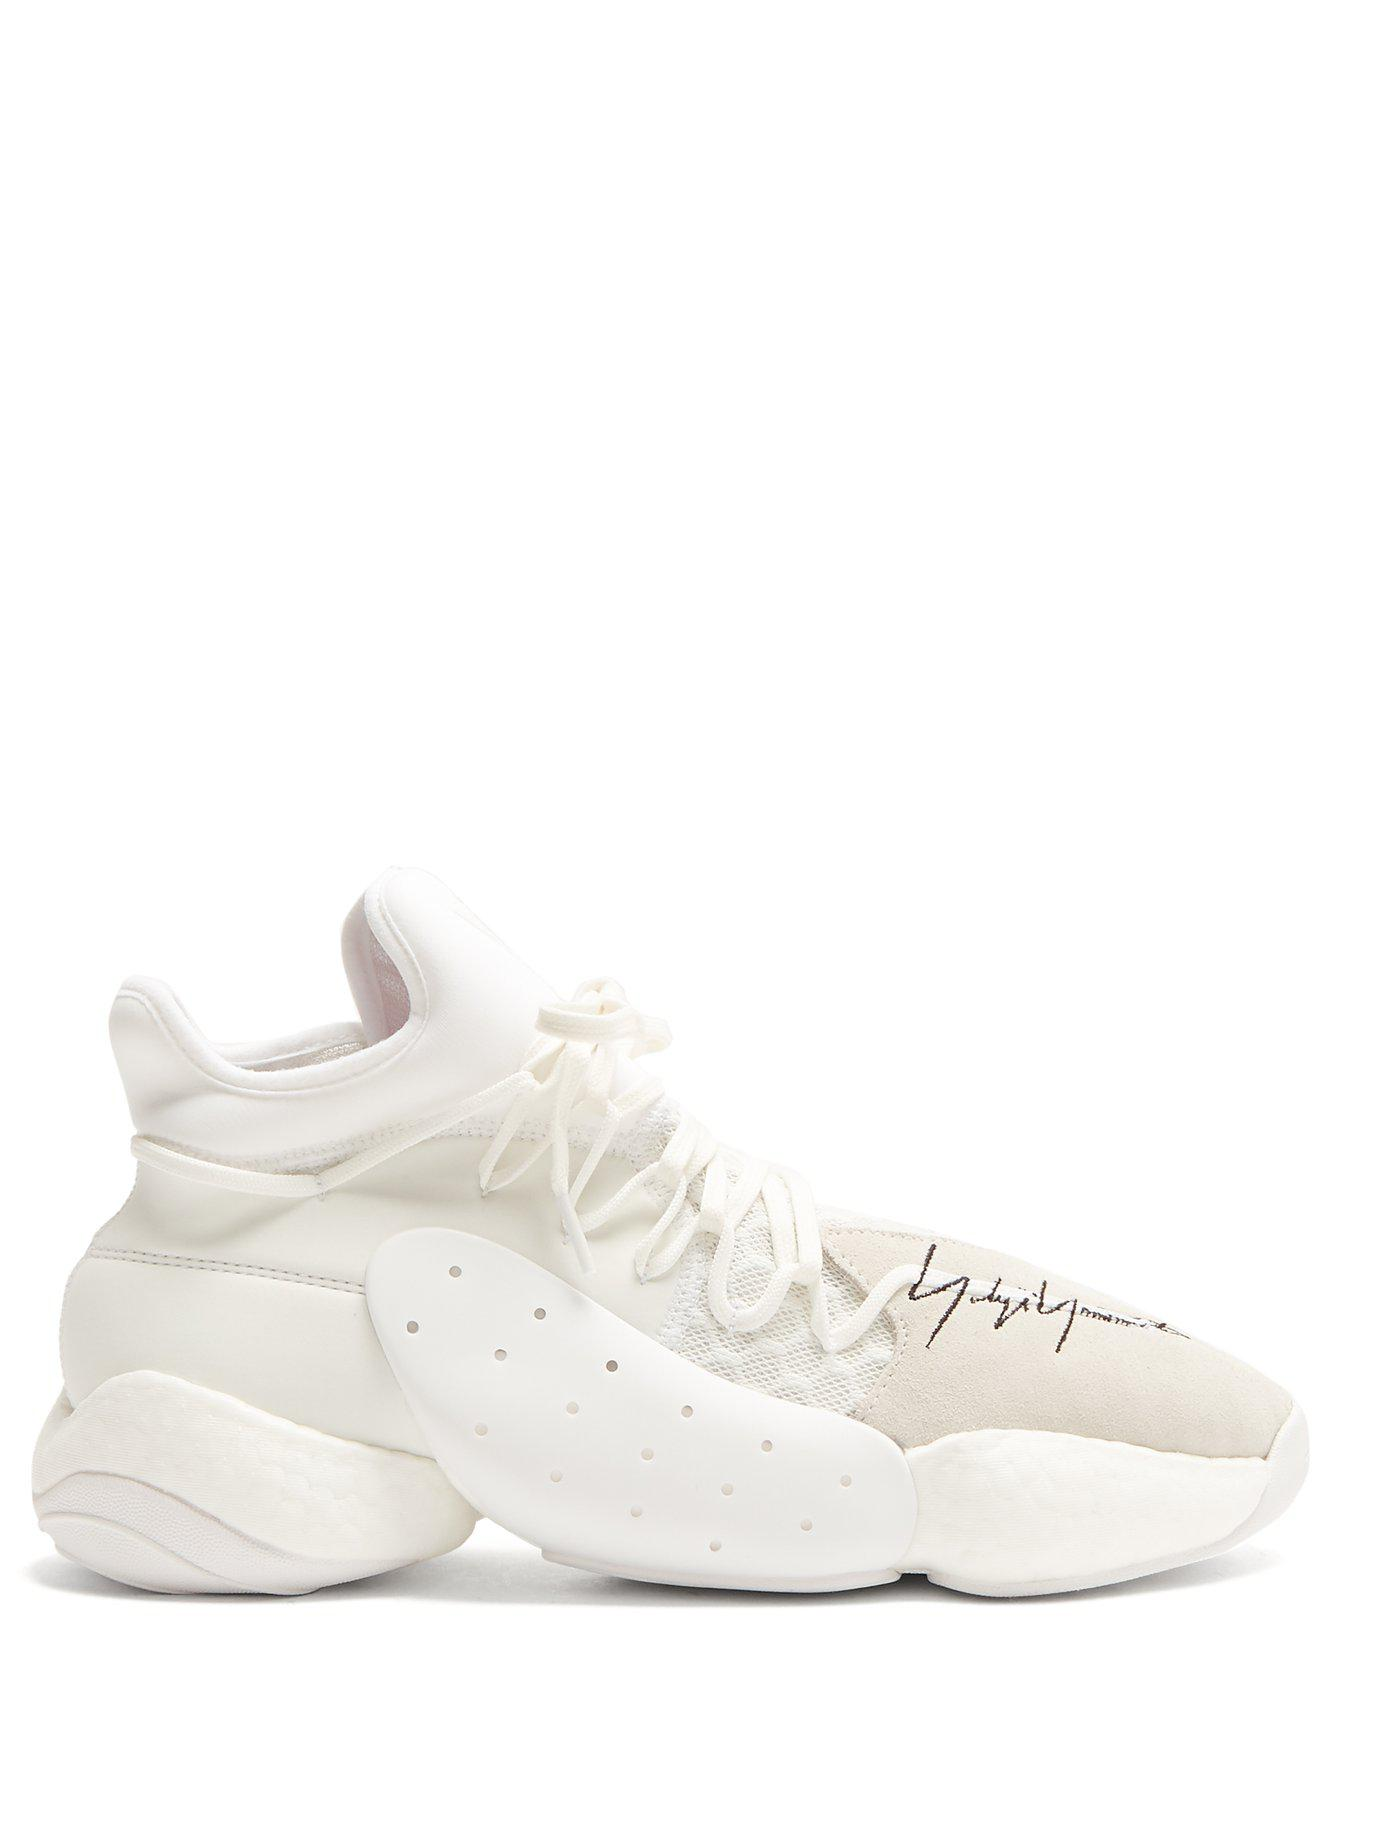 5e54f23a829 Lyst - Y-3 X James Harden Byw Bball Mid Top Trainers in White for Men